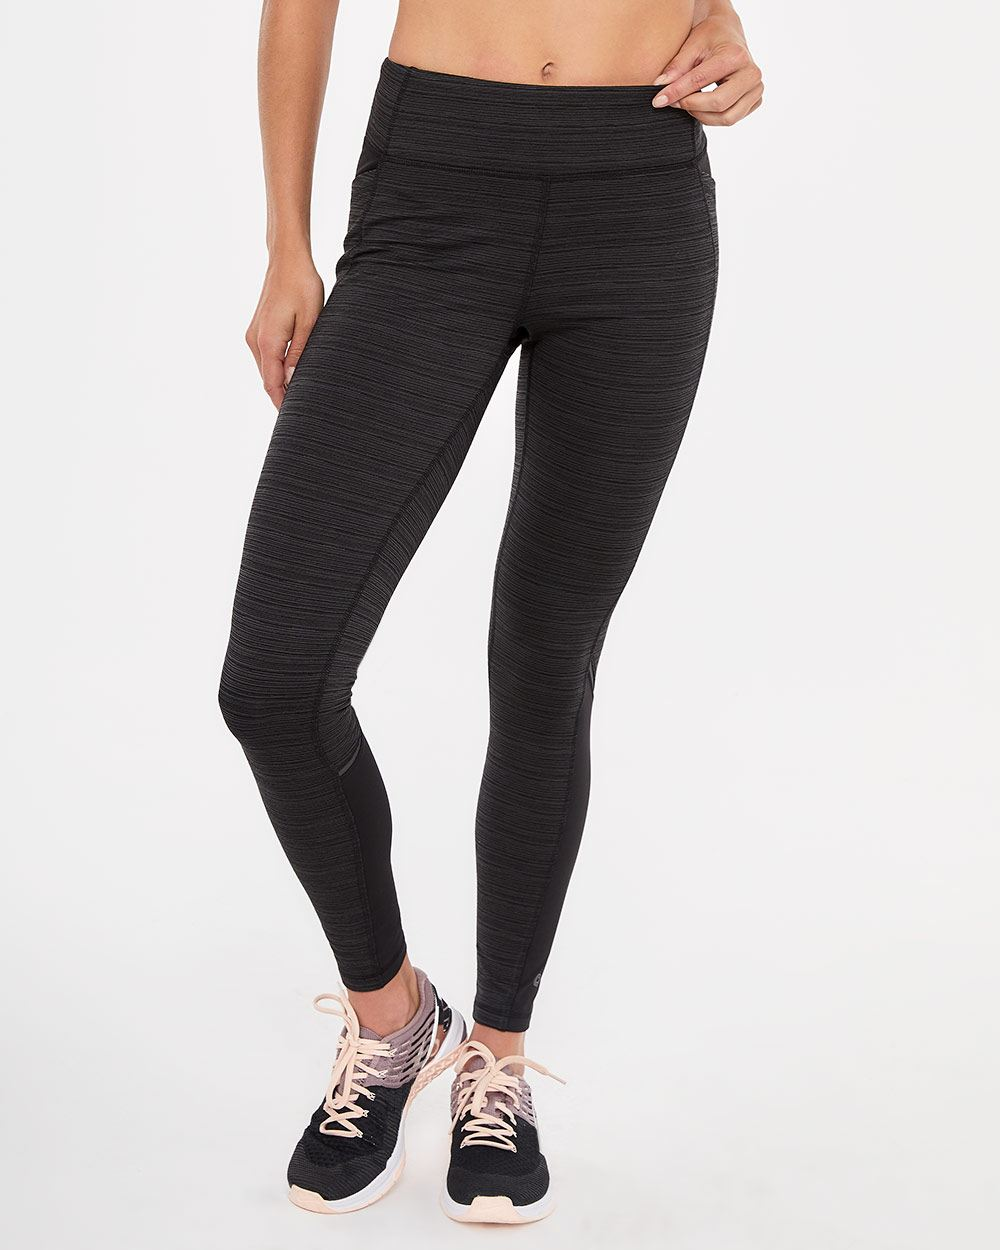 Brushed Leggings with Pockets